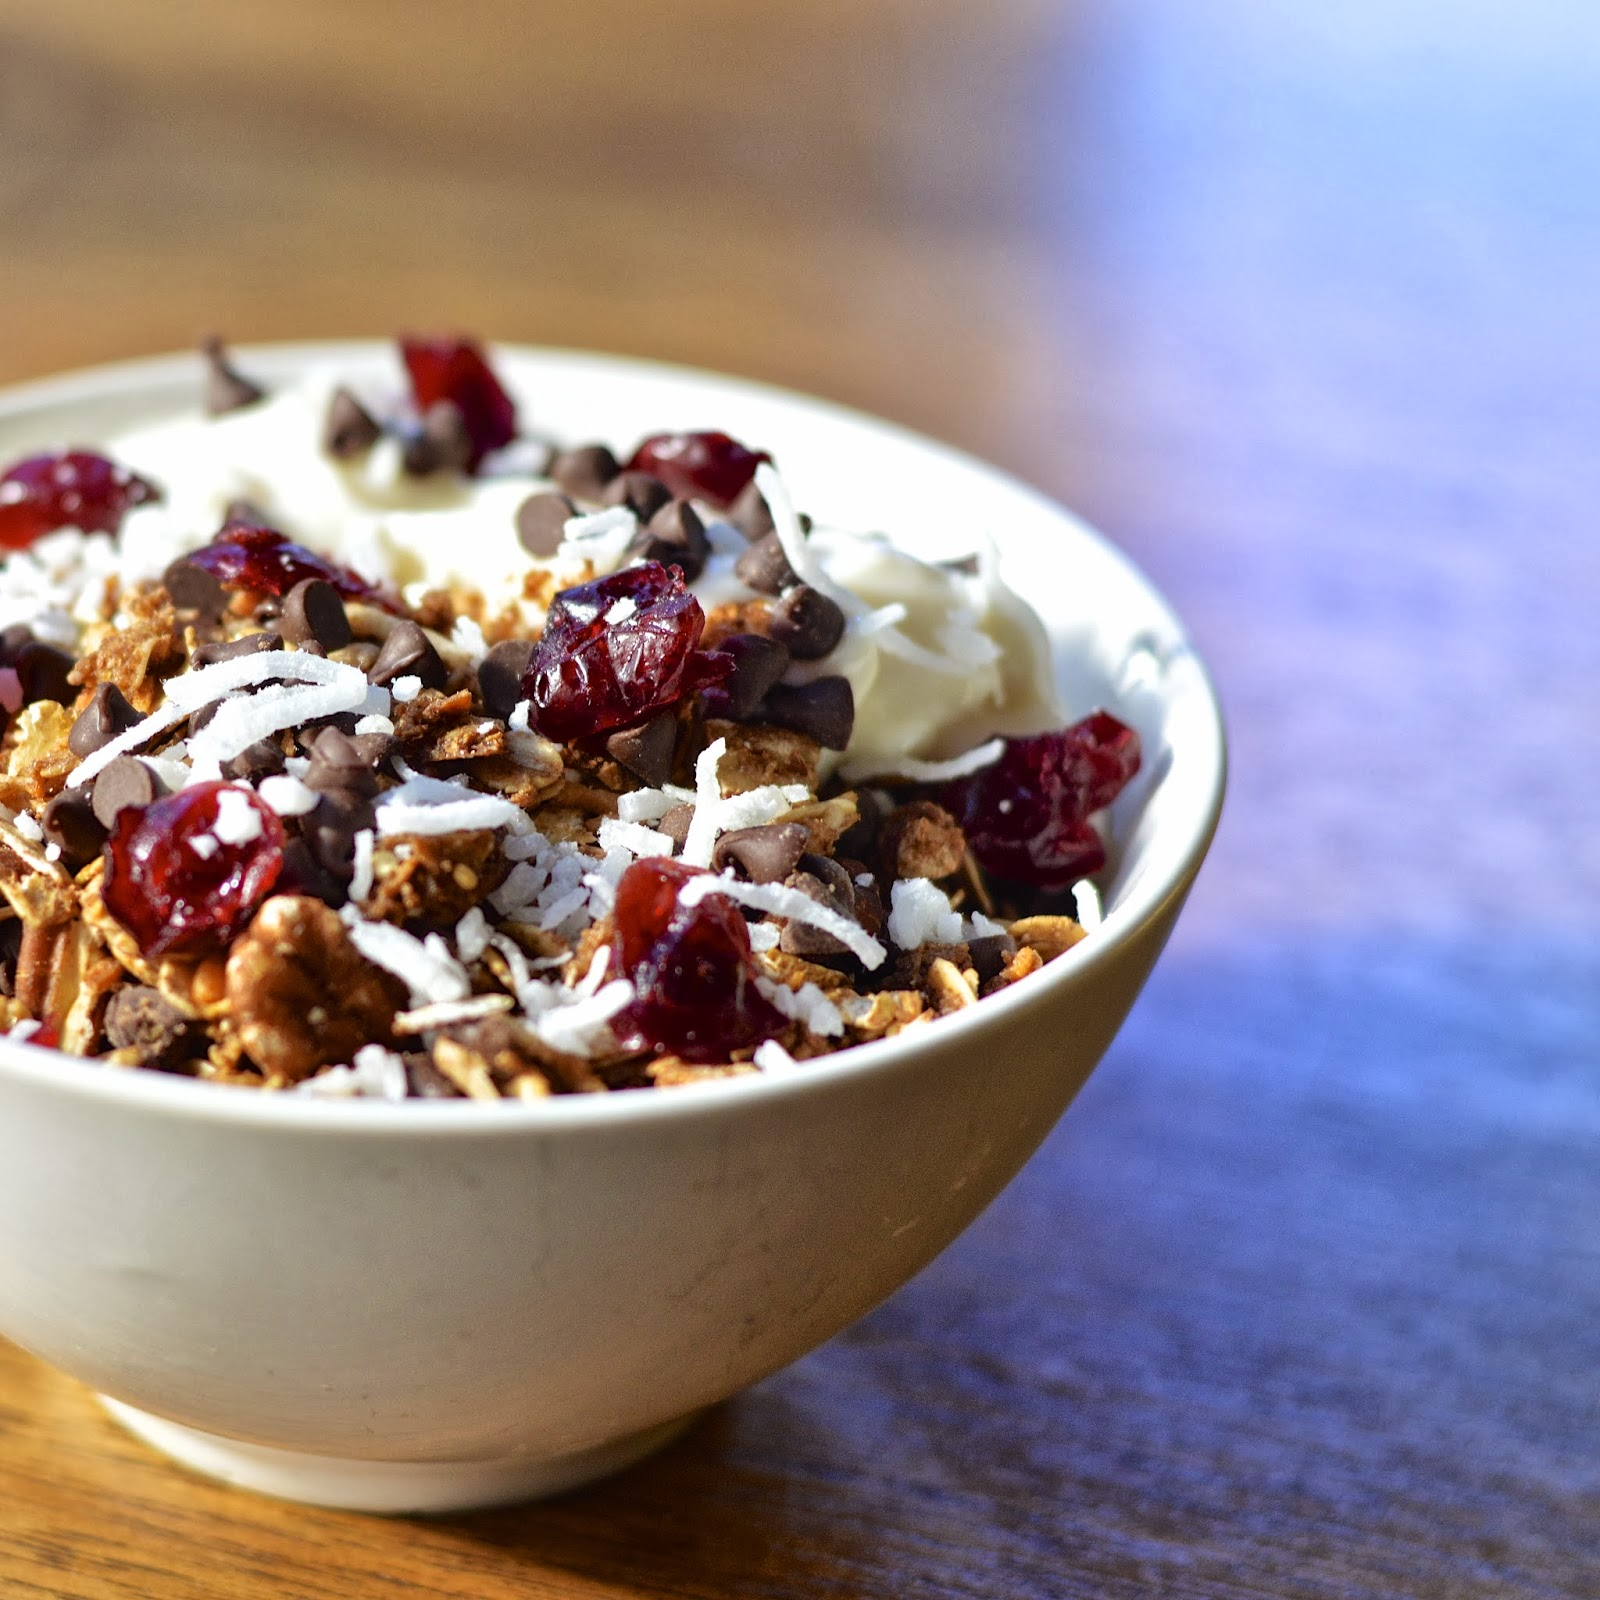 ... Yogurt Sundae | Virtually Homemade: Chocolate Cranberry Yogurt Sundae